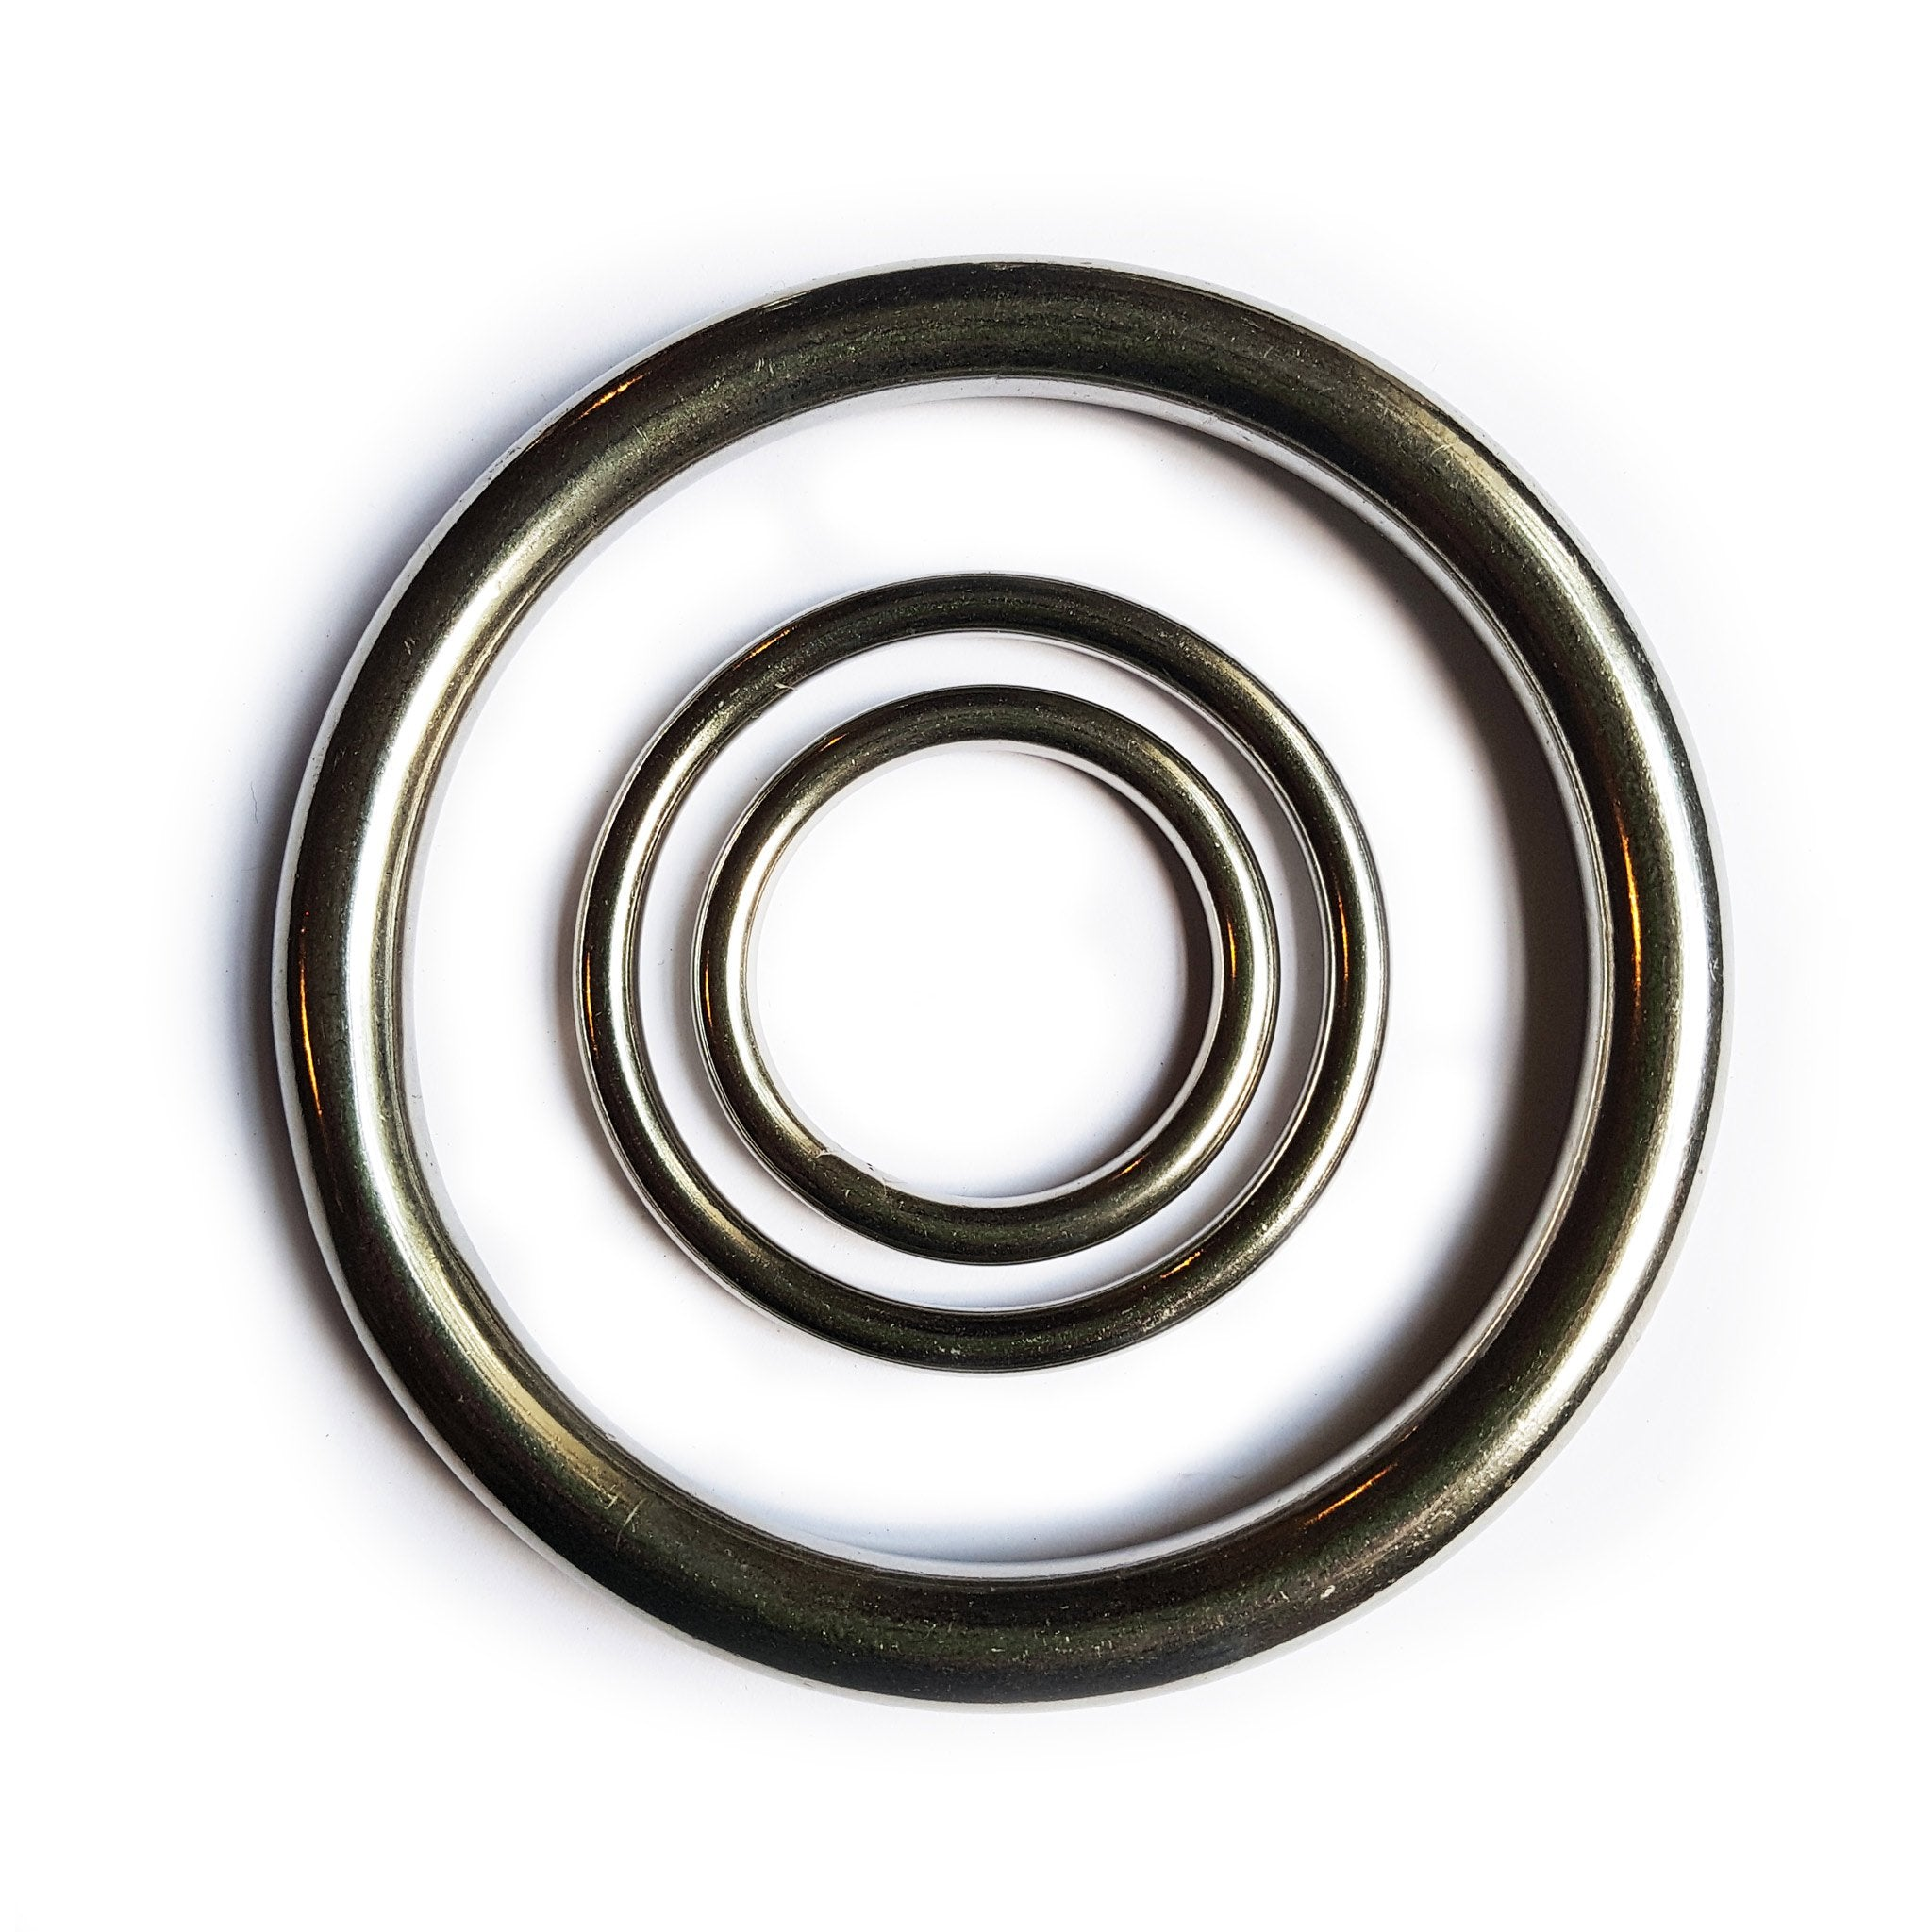 Welded Ring - Stainless Steel - Arthur Beale